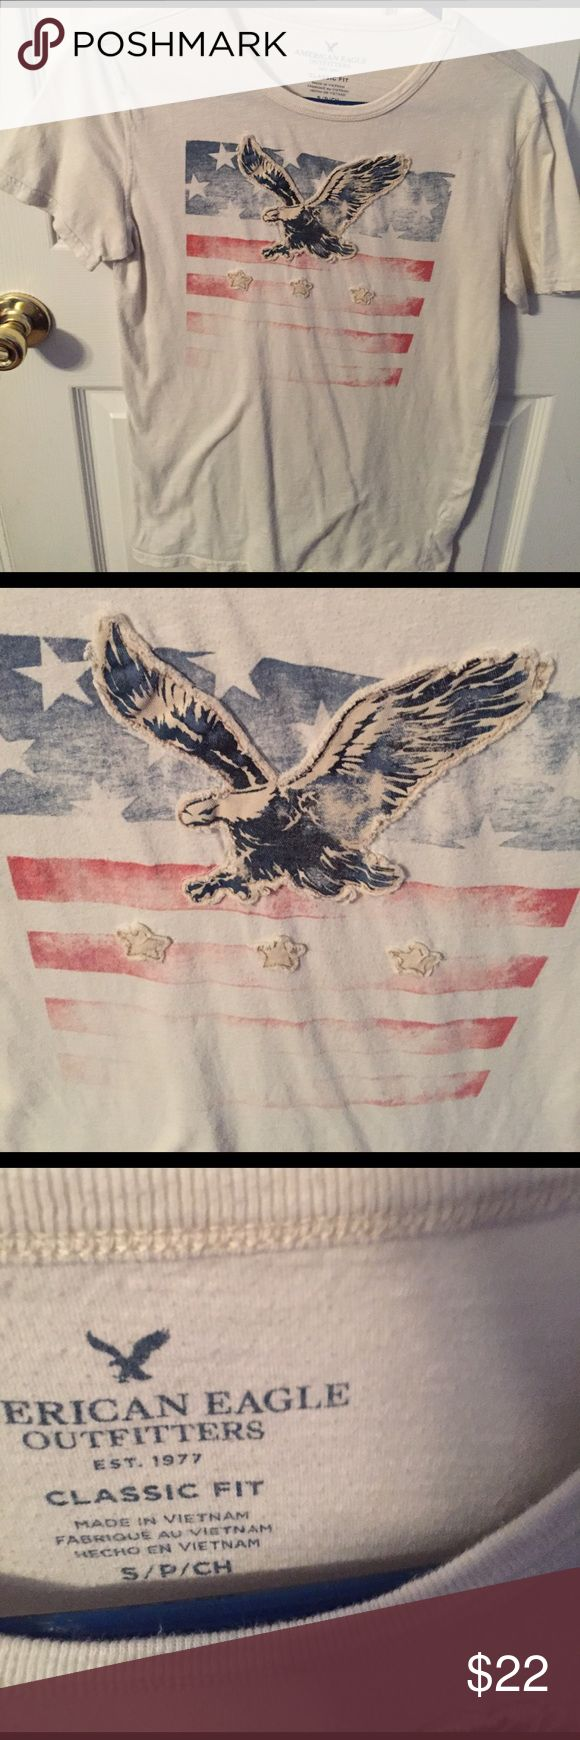 American eagle shirt American eagle shirt with American flag on front. Off white color. Small stain near top left shoulder. American Eagle Outfitters Shirts Tees - Short Sleeve